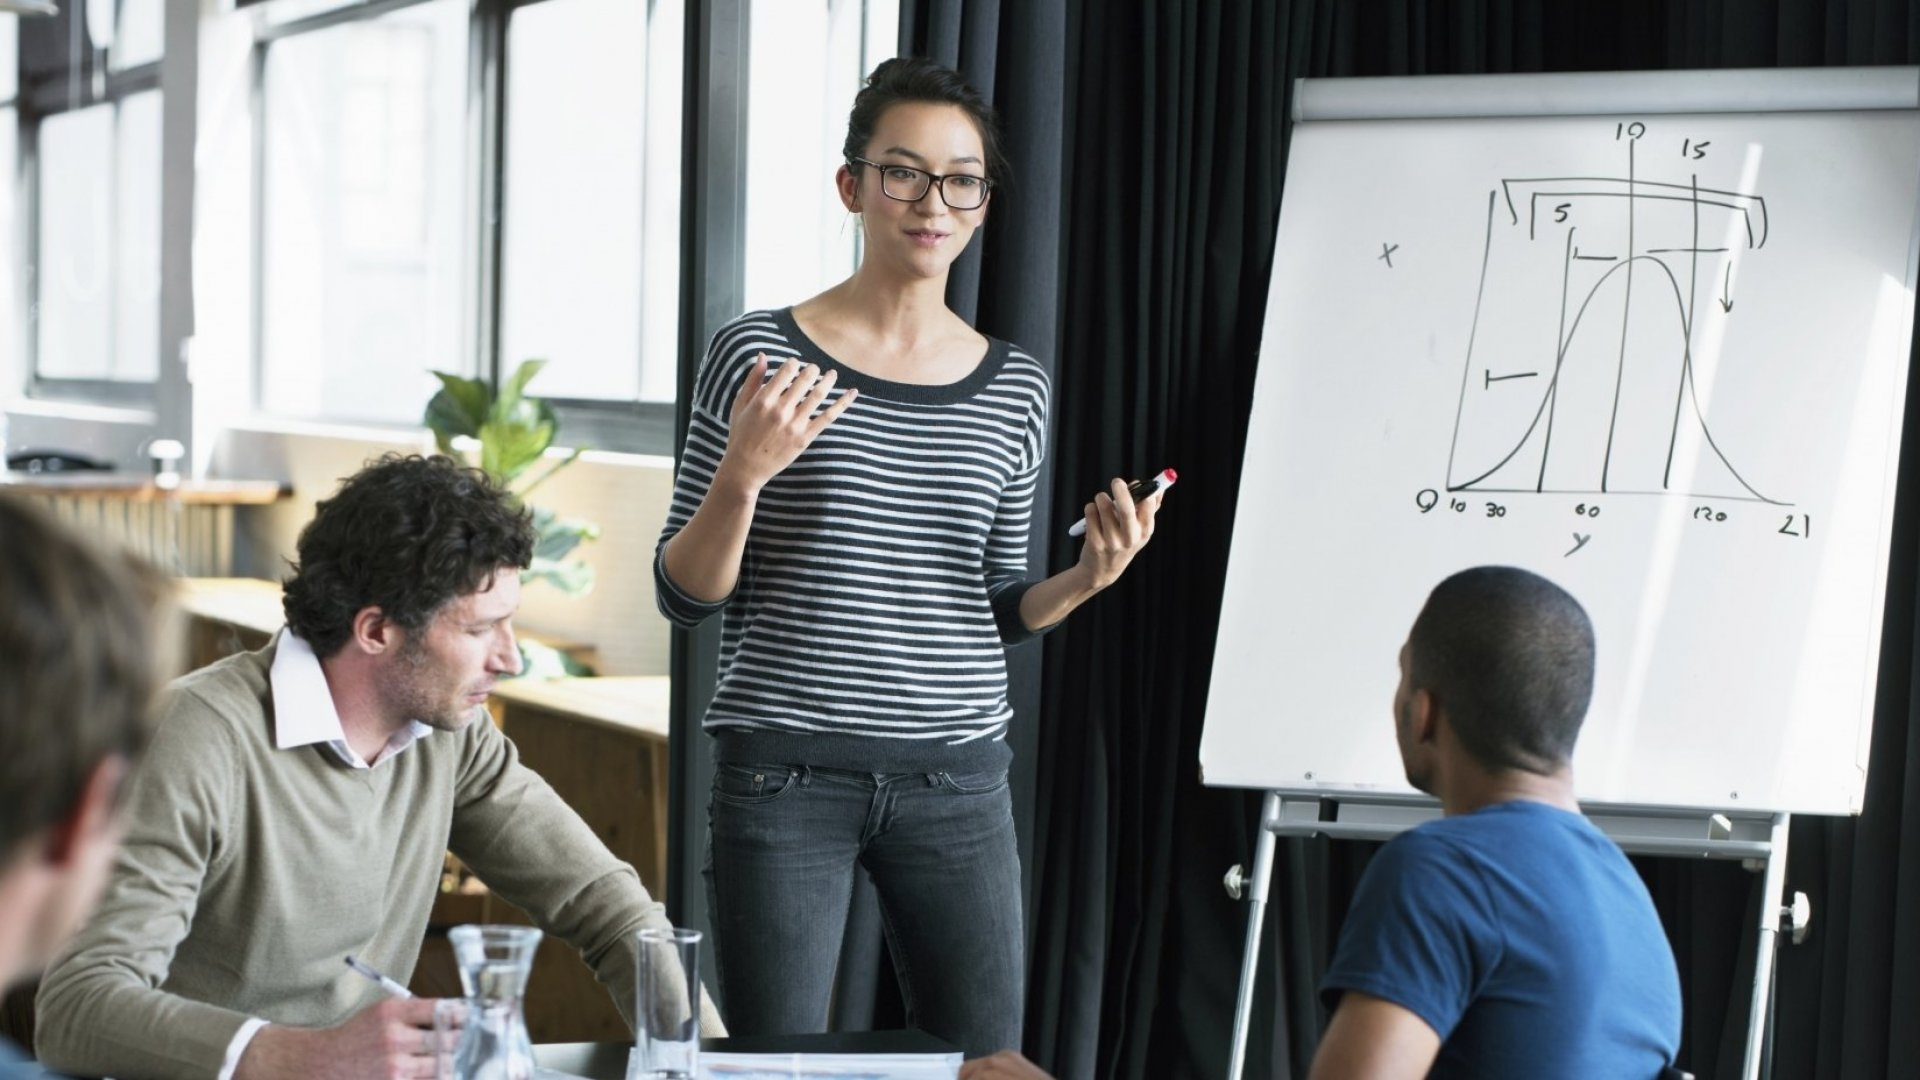 This 10-Minute TED Talk Will Teach You Everything You Need to Know About Presenting